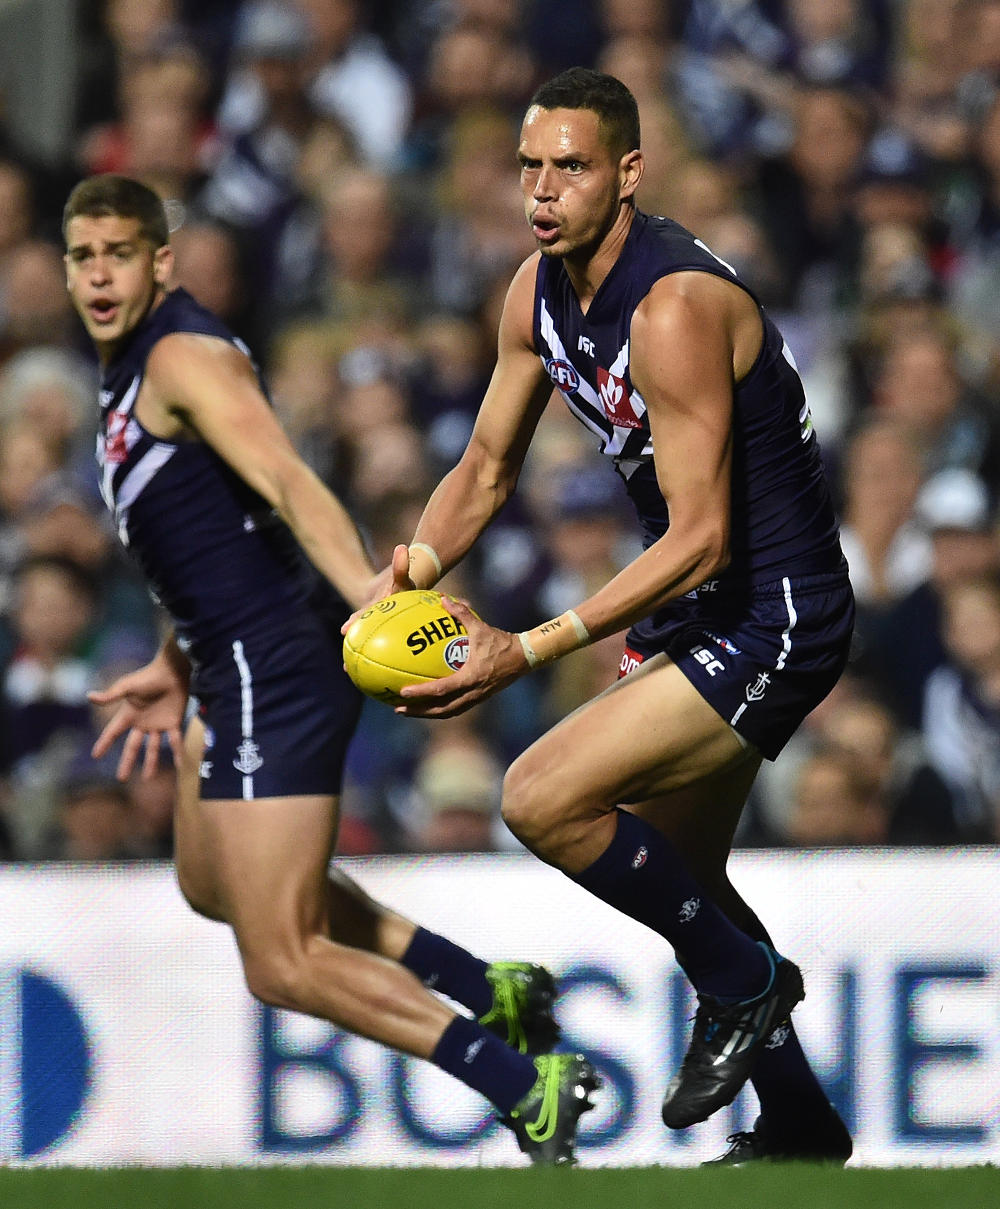 The Dockers' Michael Johnson